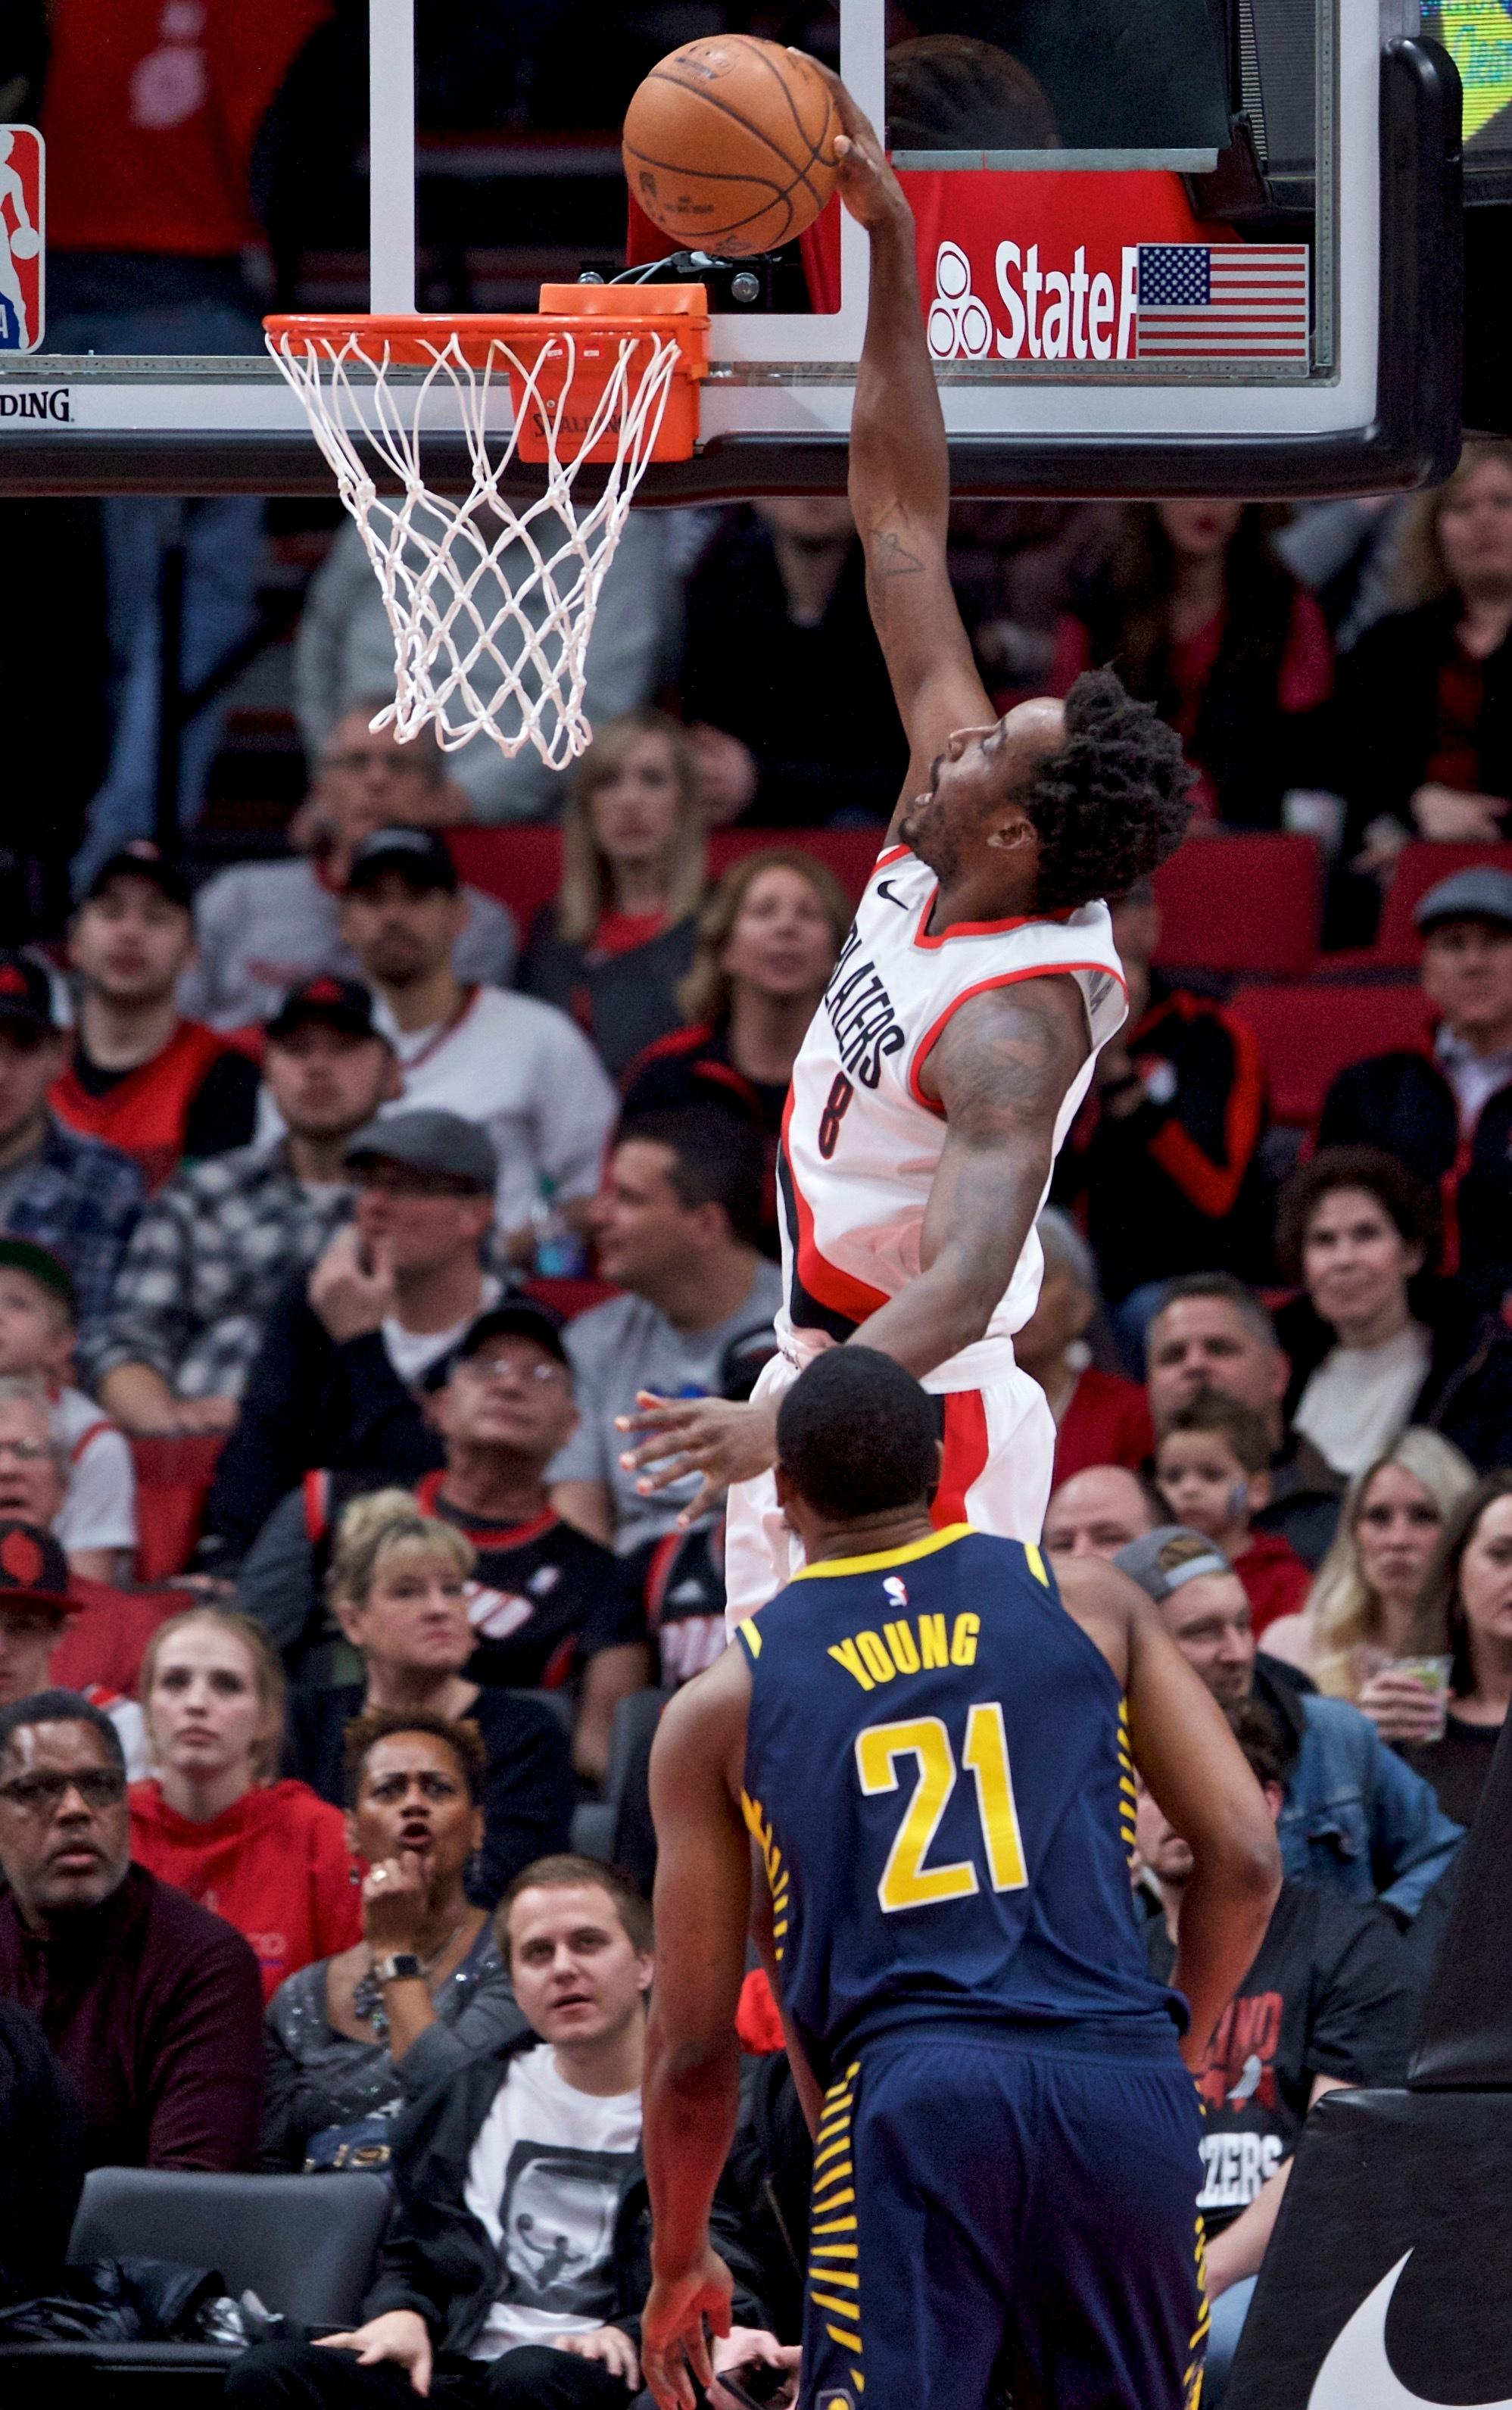 Portland Trail Blazers forward Al-Farouq Aminu, top, dunks over Indiana Pacers forward Thaddeus Young during the first half of an NBA basketball game in Portland, Ore., Thursday, Jan. 18, 2018. (AP Photo/Craig Mitchelldyer)